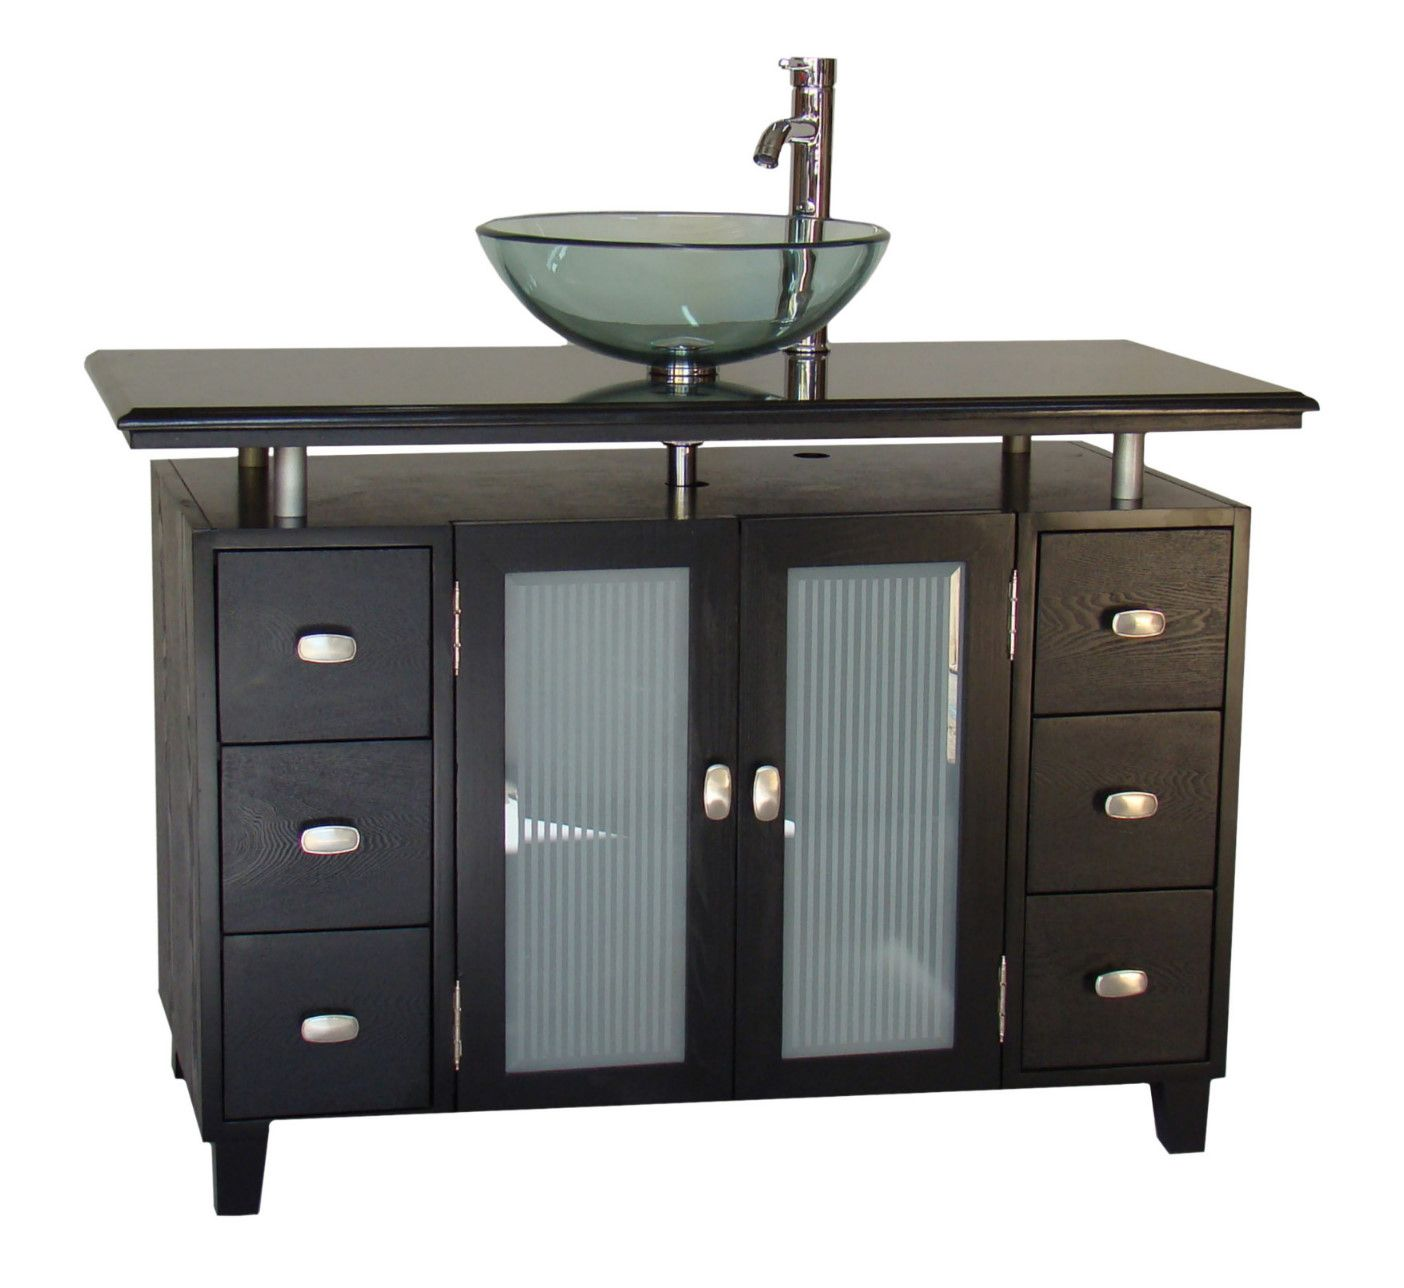 Adelina 46 Inch Vessel Sink Bathroom Vanity Black Granite Top Bathroom Vanity Modern Bathroom Decor Bathroom Construction